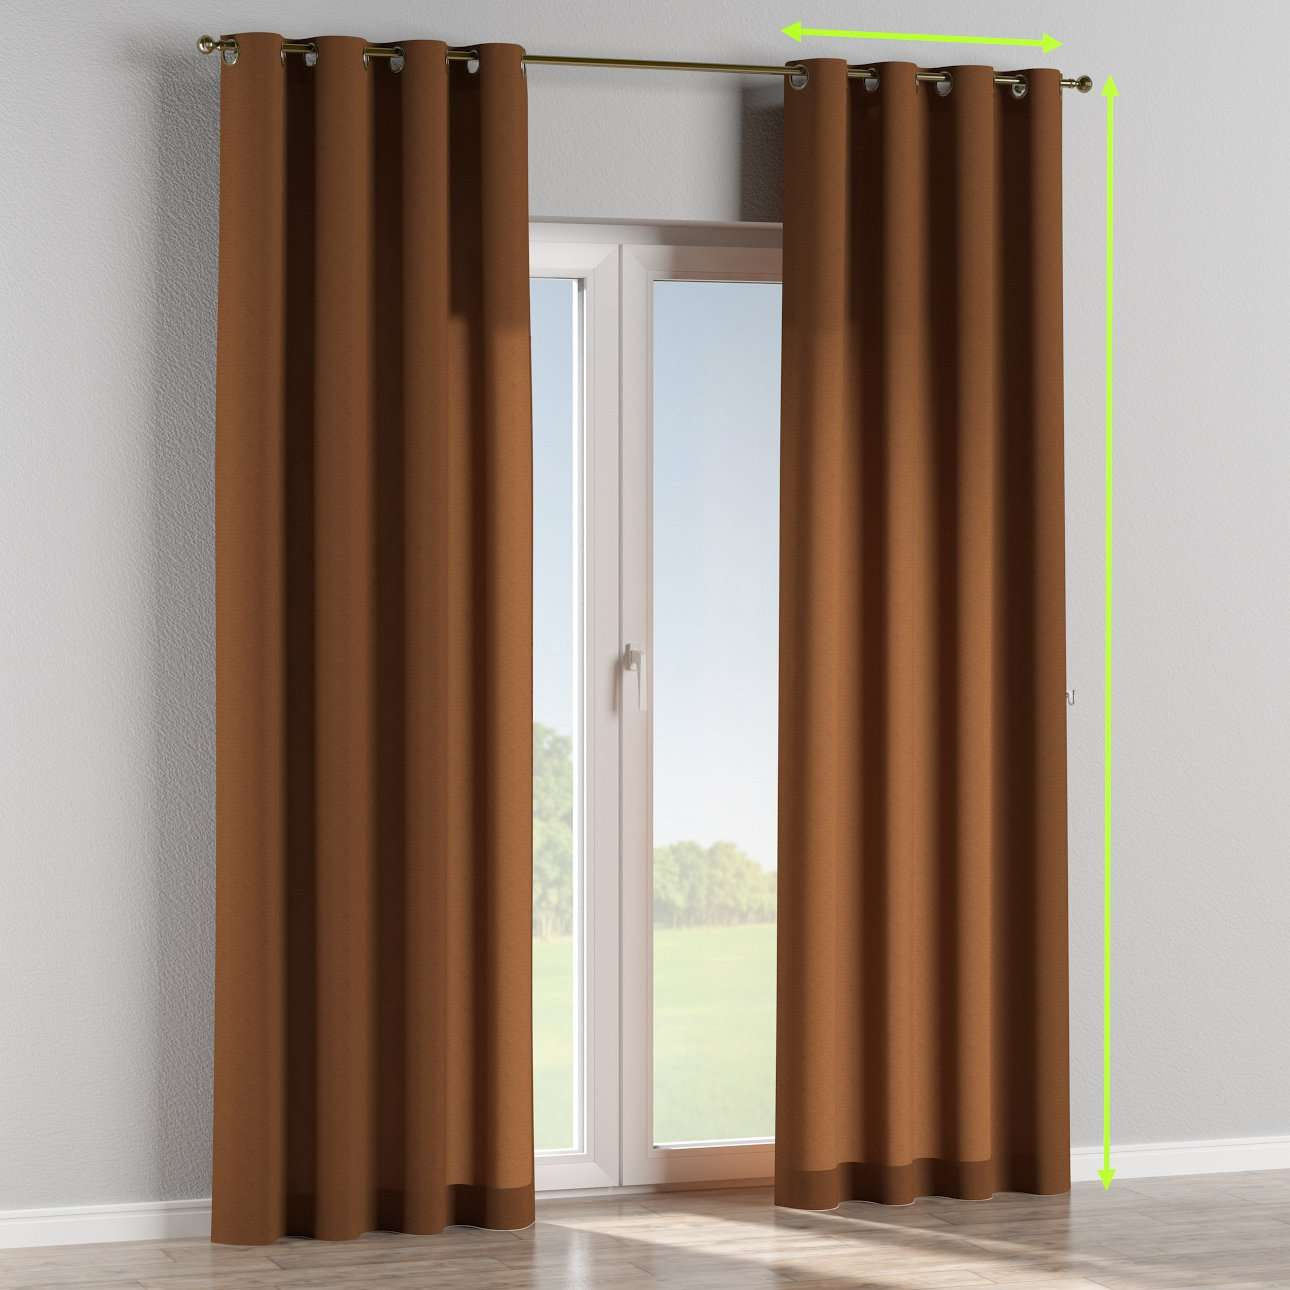 Eyelet curtains in collection Jupiter, fabric: 127-88